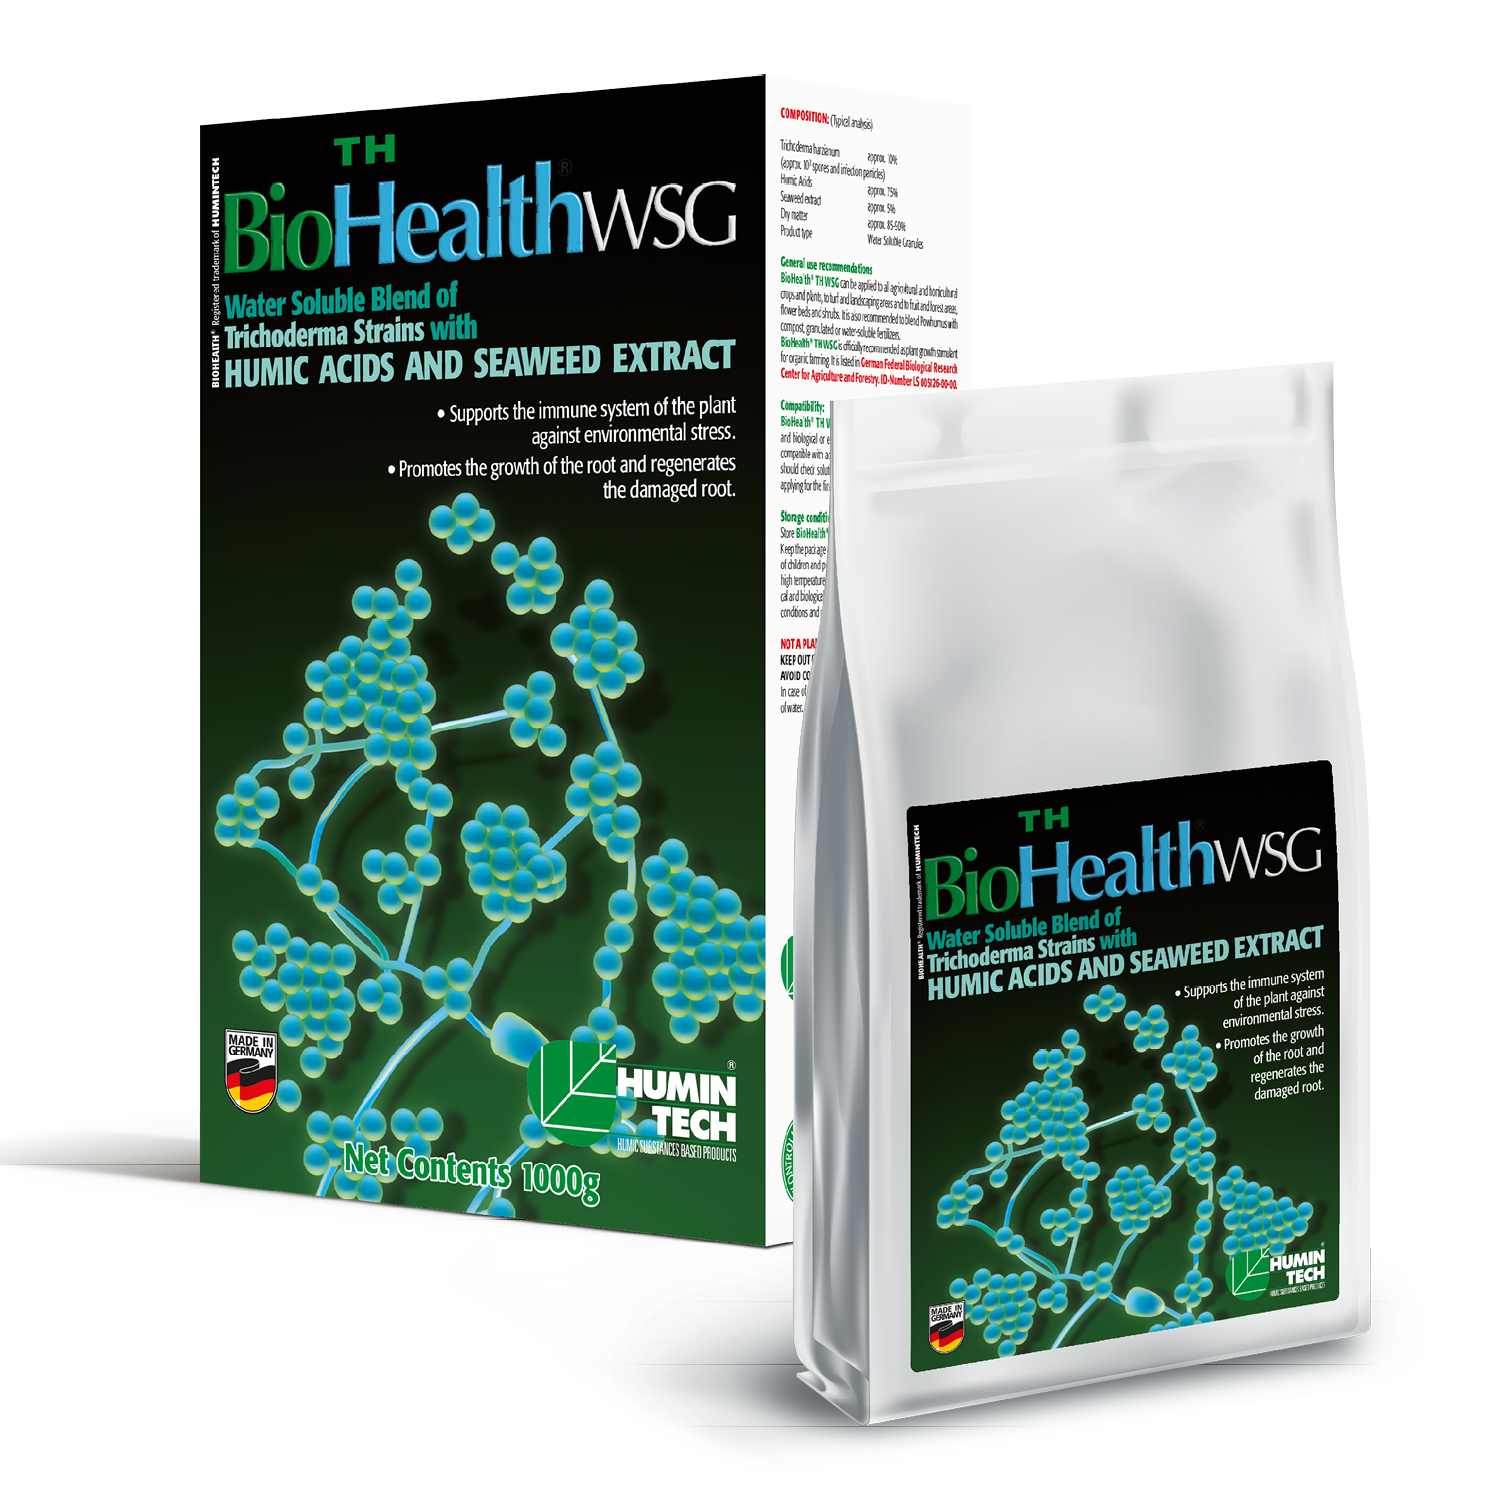 BioHealth TH WSG Water Soluble Blend of Trichoderma strains Humic Acids and Seaweed Extract